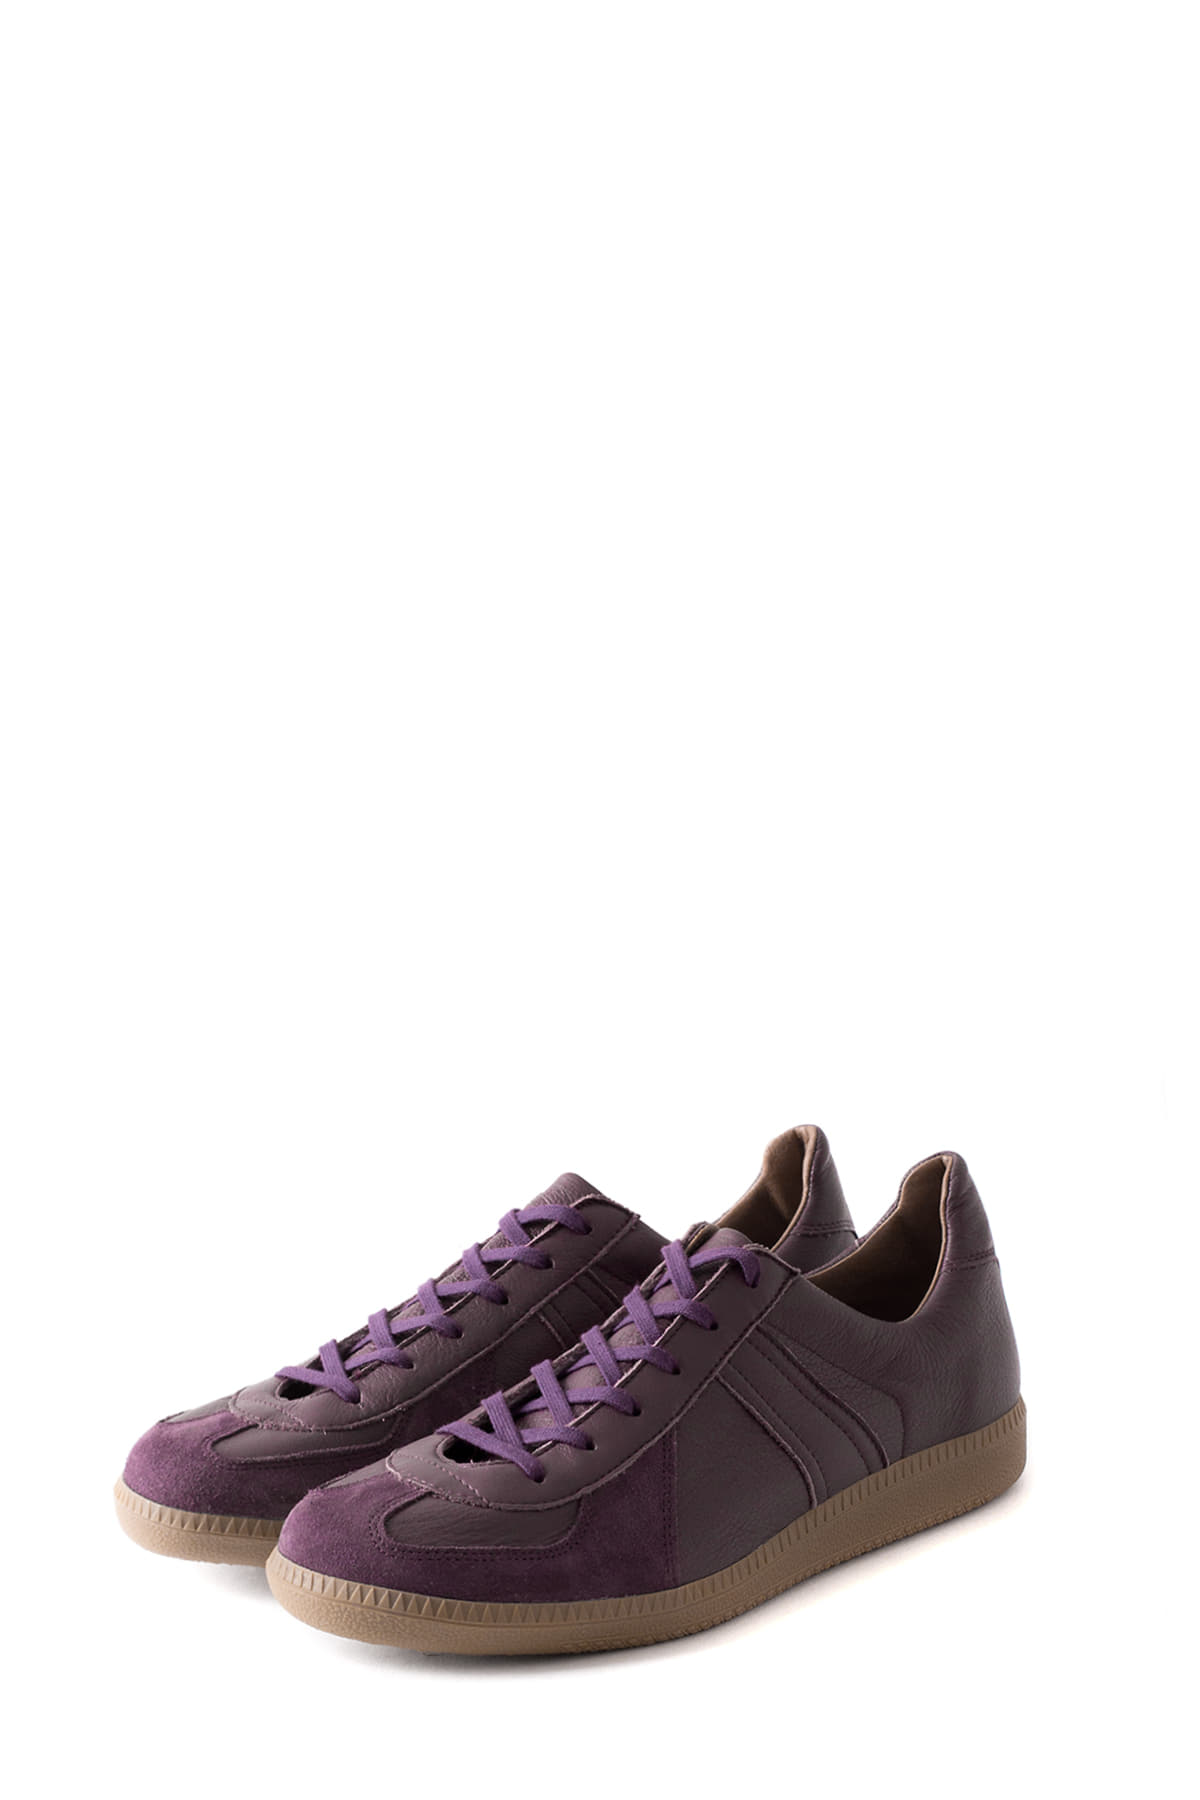 REPRODUCTION OF FOUND : German Military Trainer (Purple)